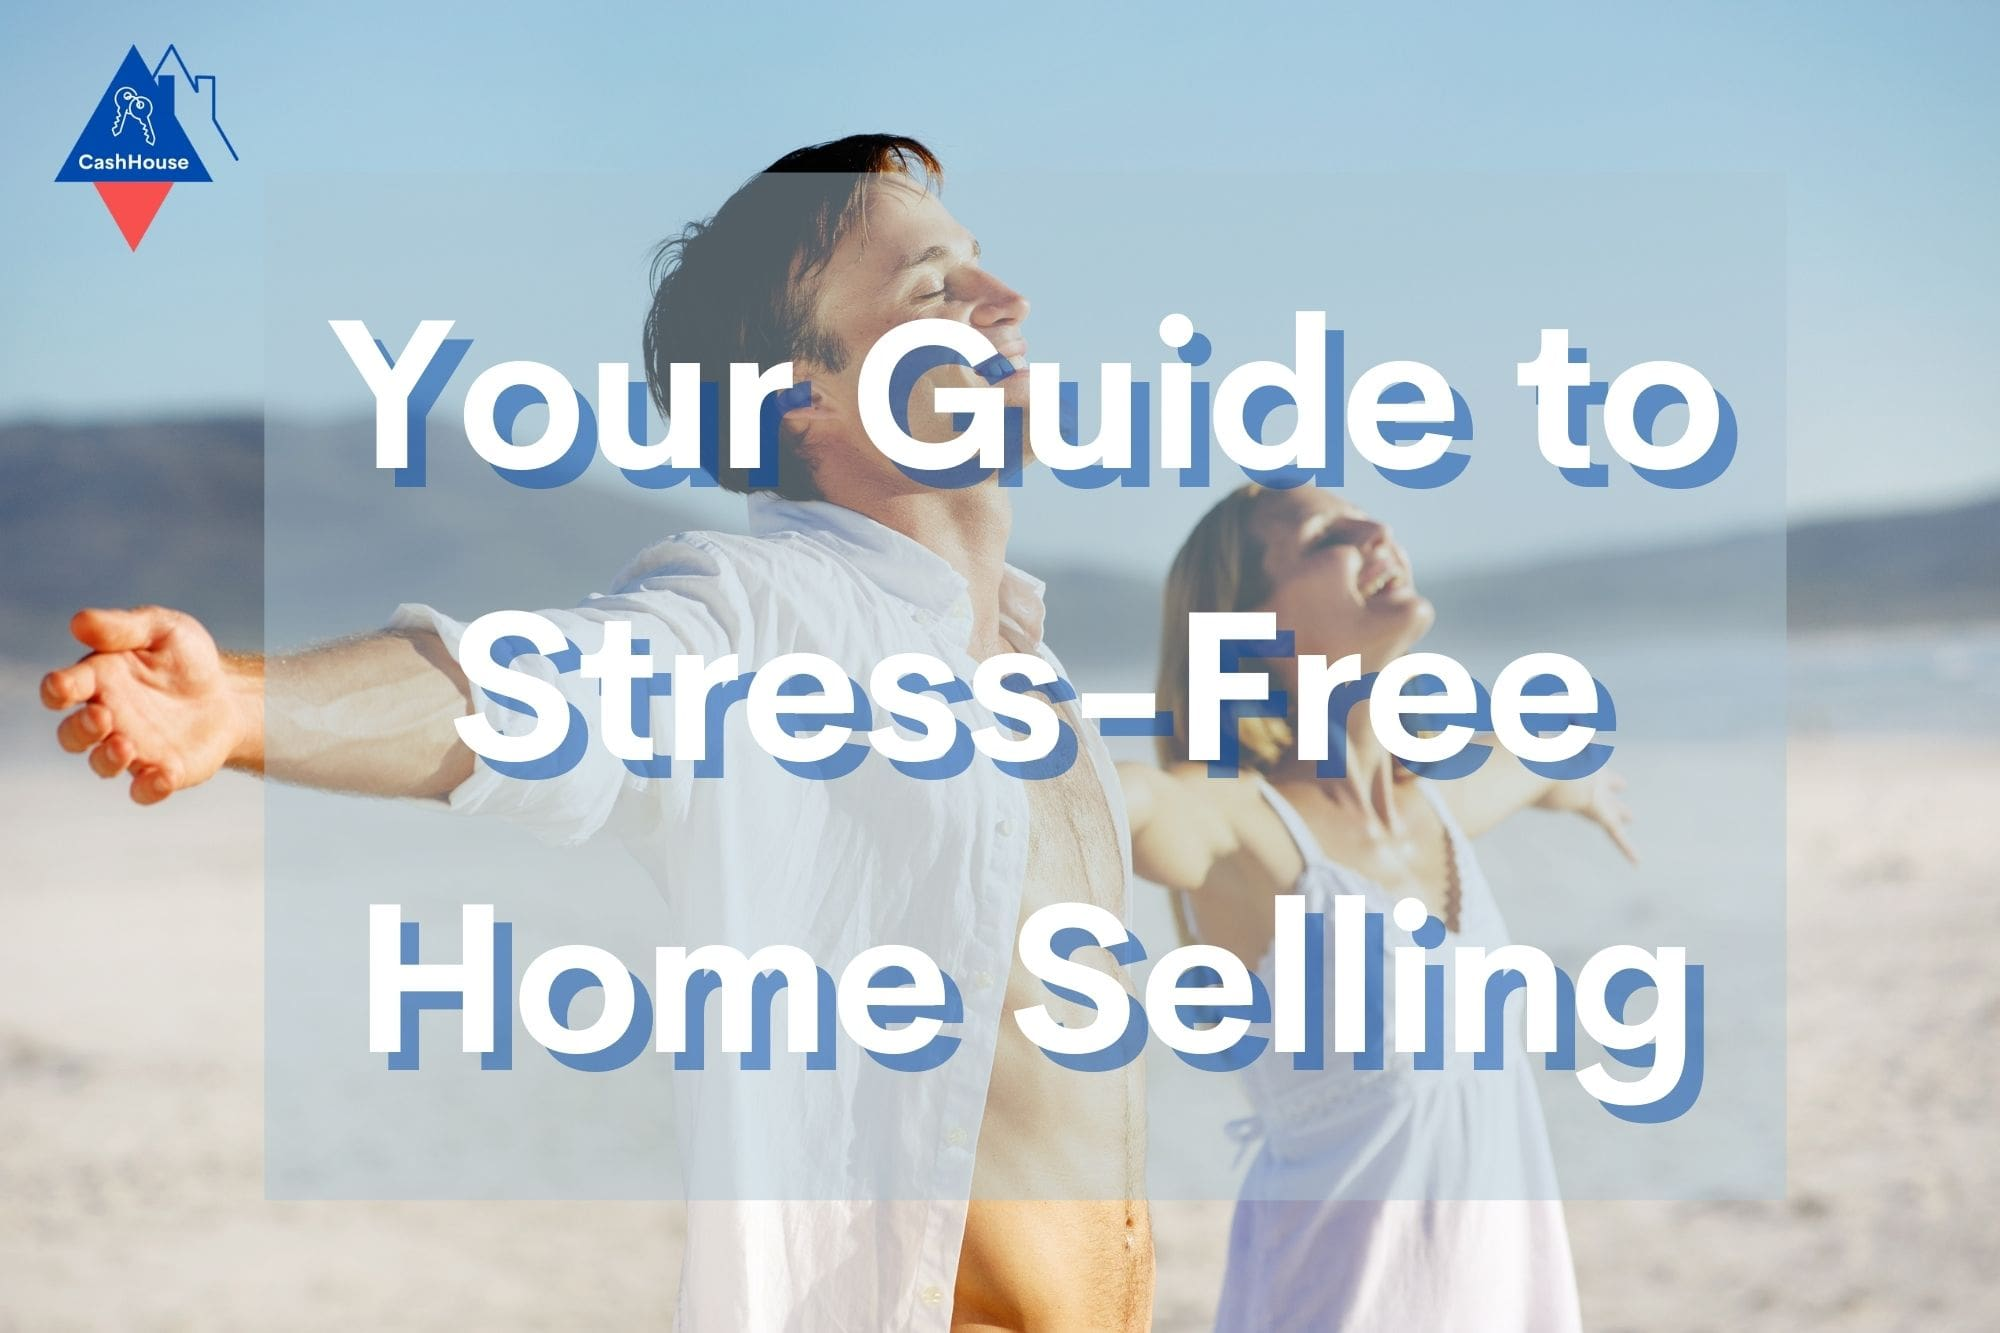 Stress-free home selling, is it still possible?